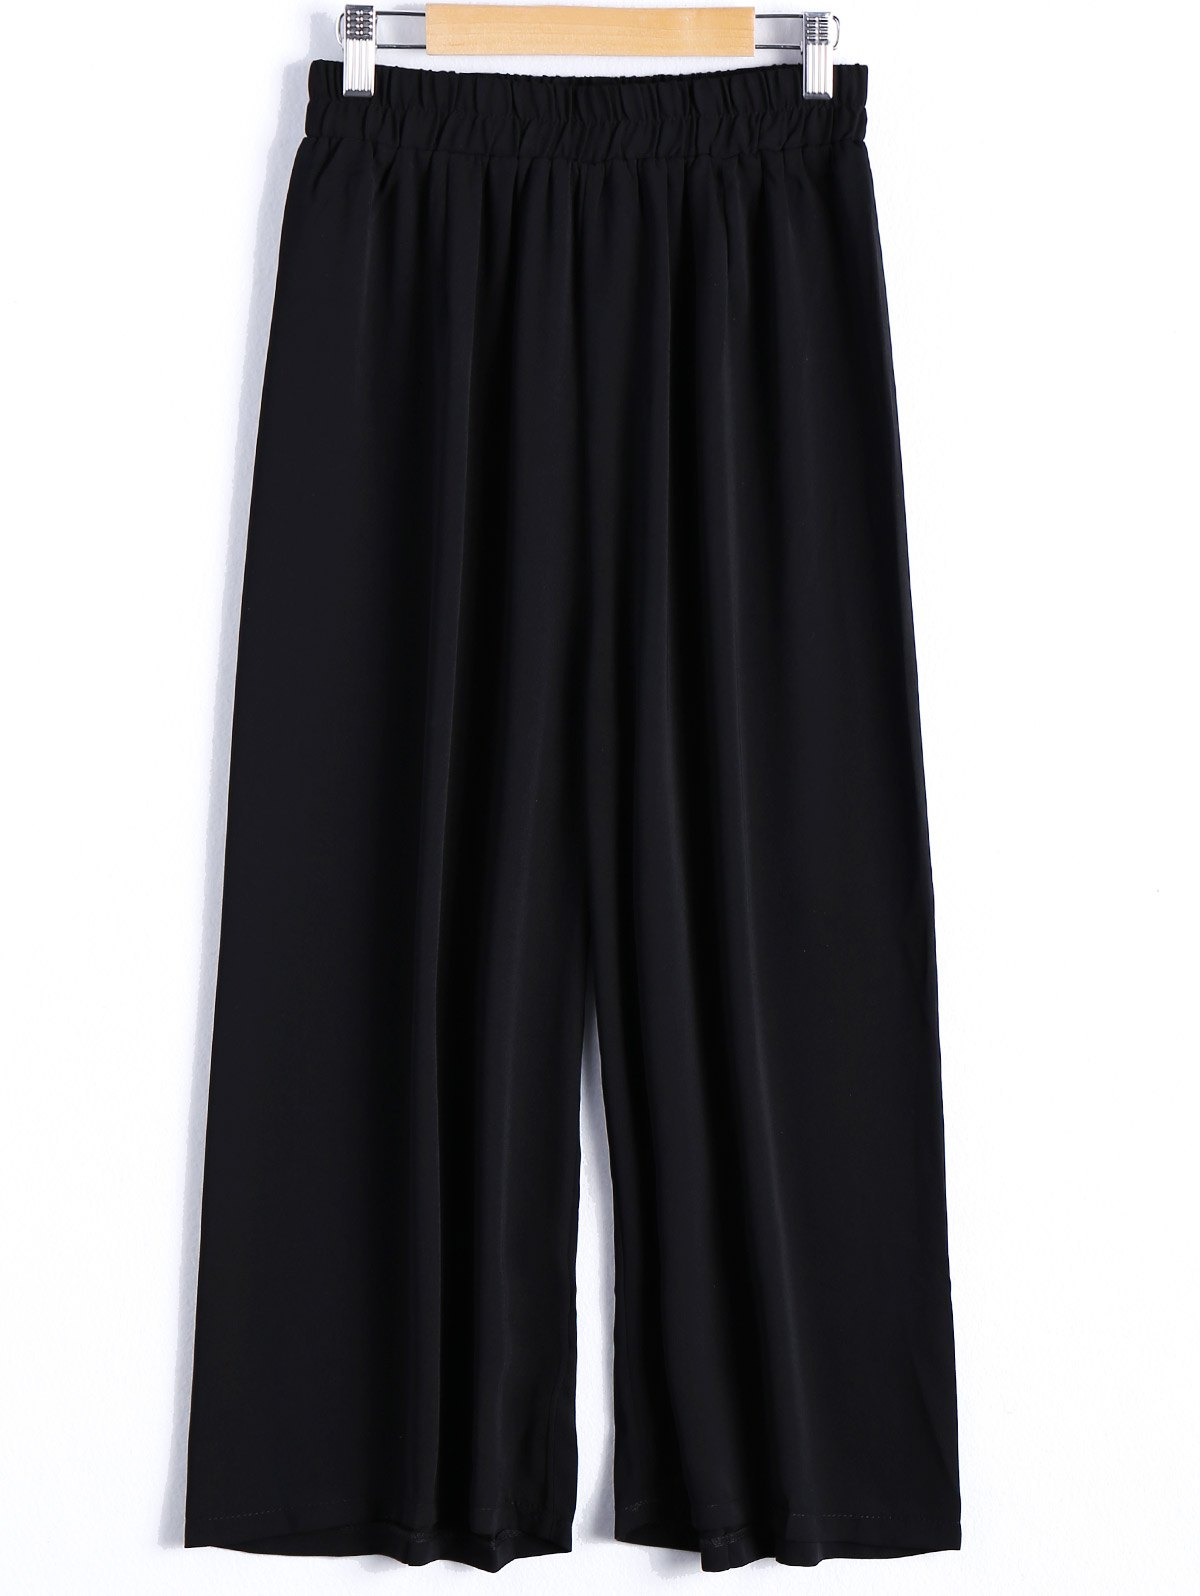 Casual Women's Elastic Waist Wide Leg Pants - BLACK ONE SIZE(FIT SIZE XS TO M)